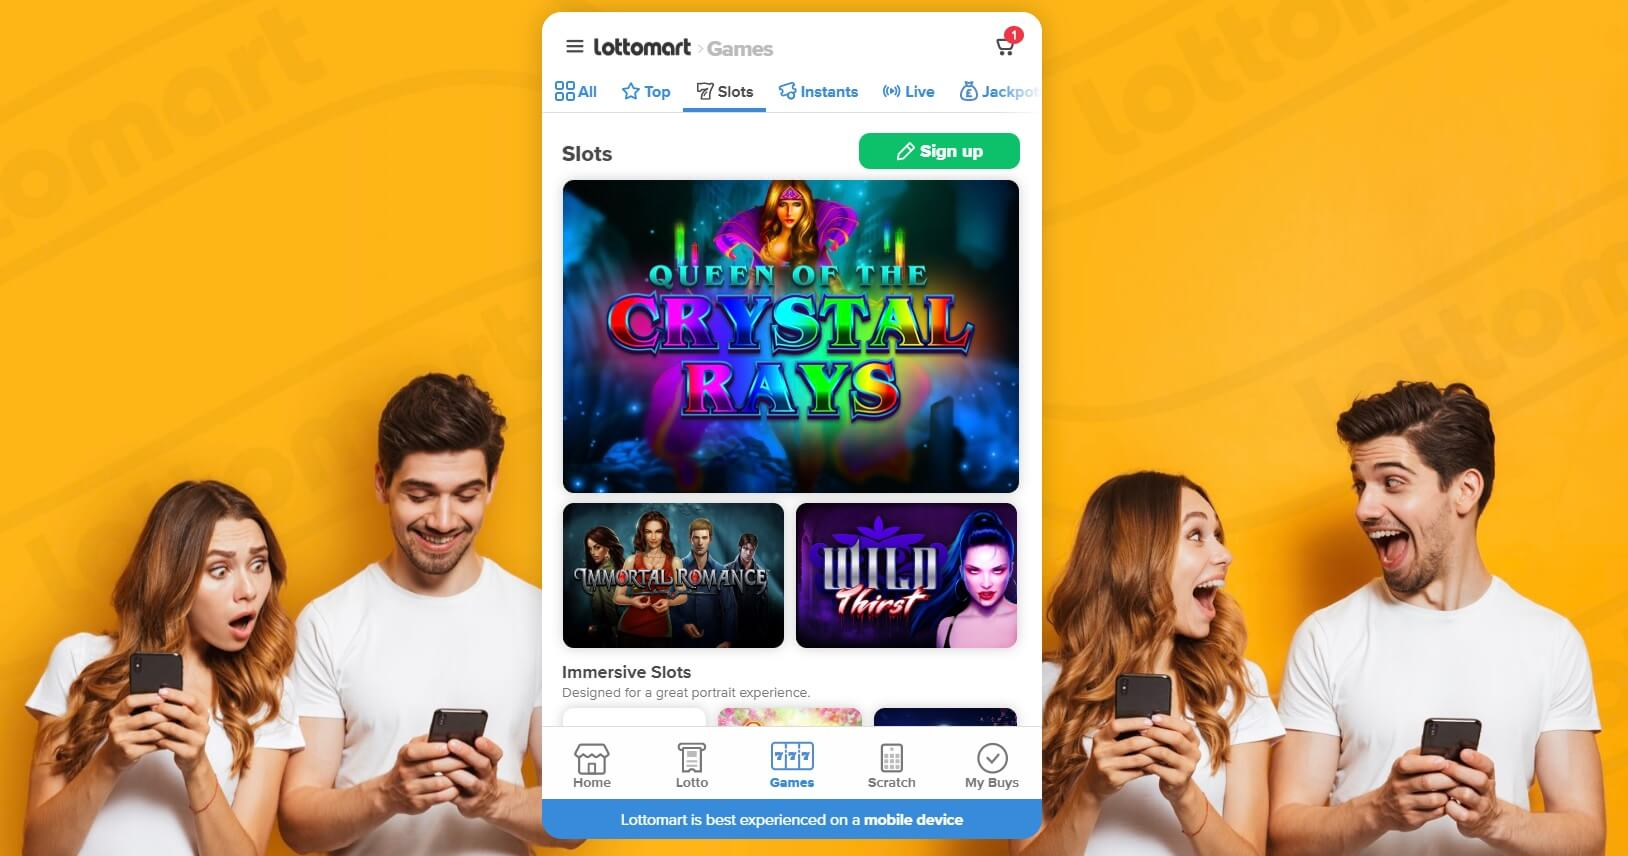 uk online casinos review of lottomart